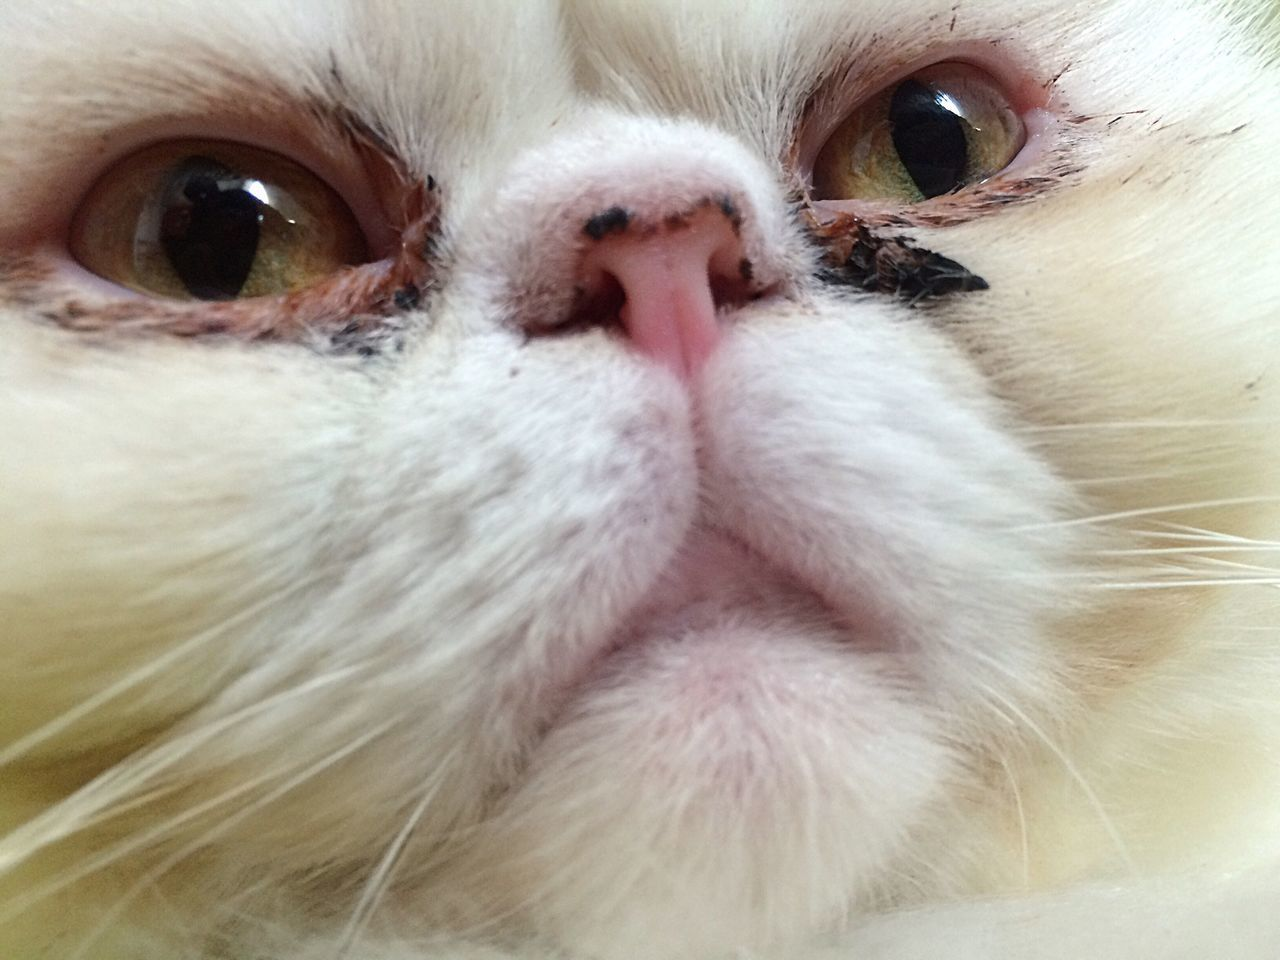 domestic cat, feline, pets, animal themes, domestic animals, one animal, cat, mammal, whisker, no people, close-up, portrait, indoors, persian cat, day